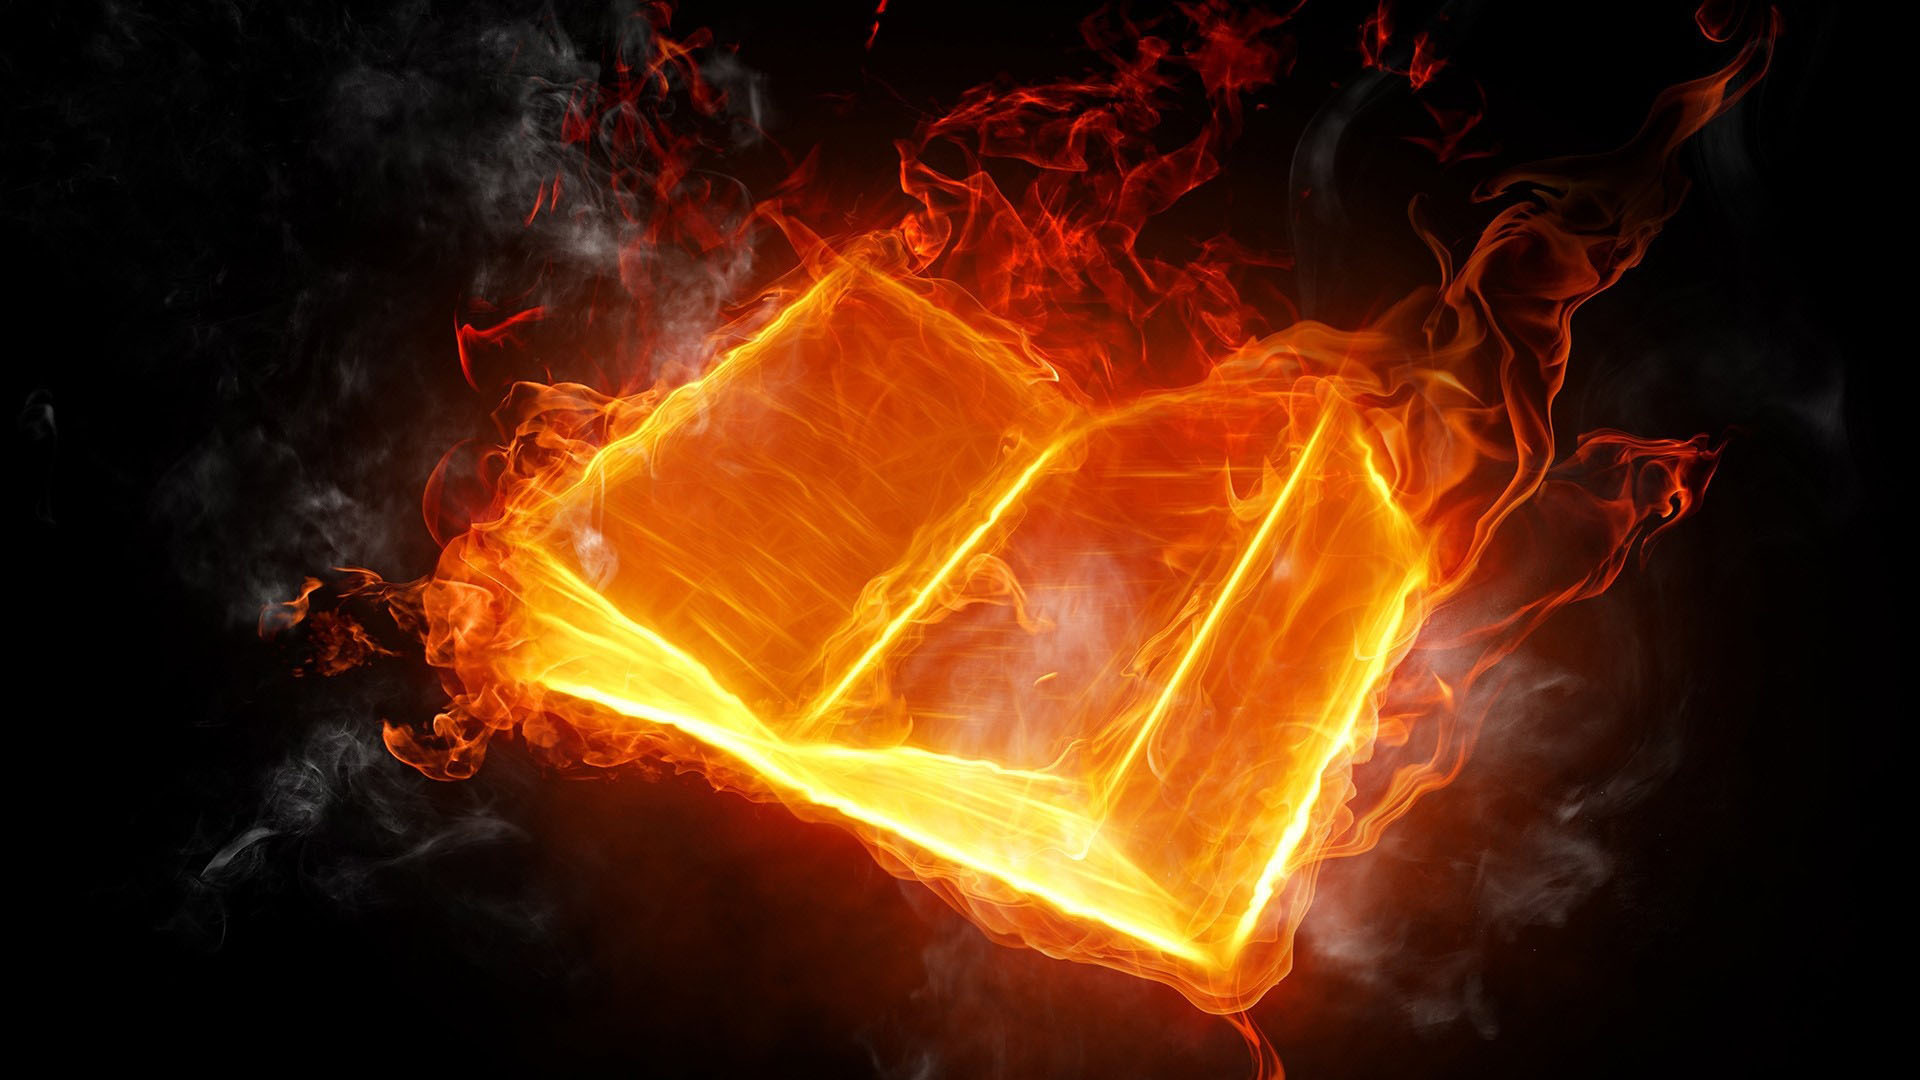 3D Fire Book Image - 3D HD Wallpaper